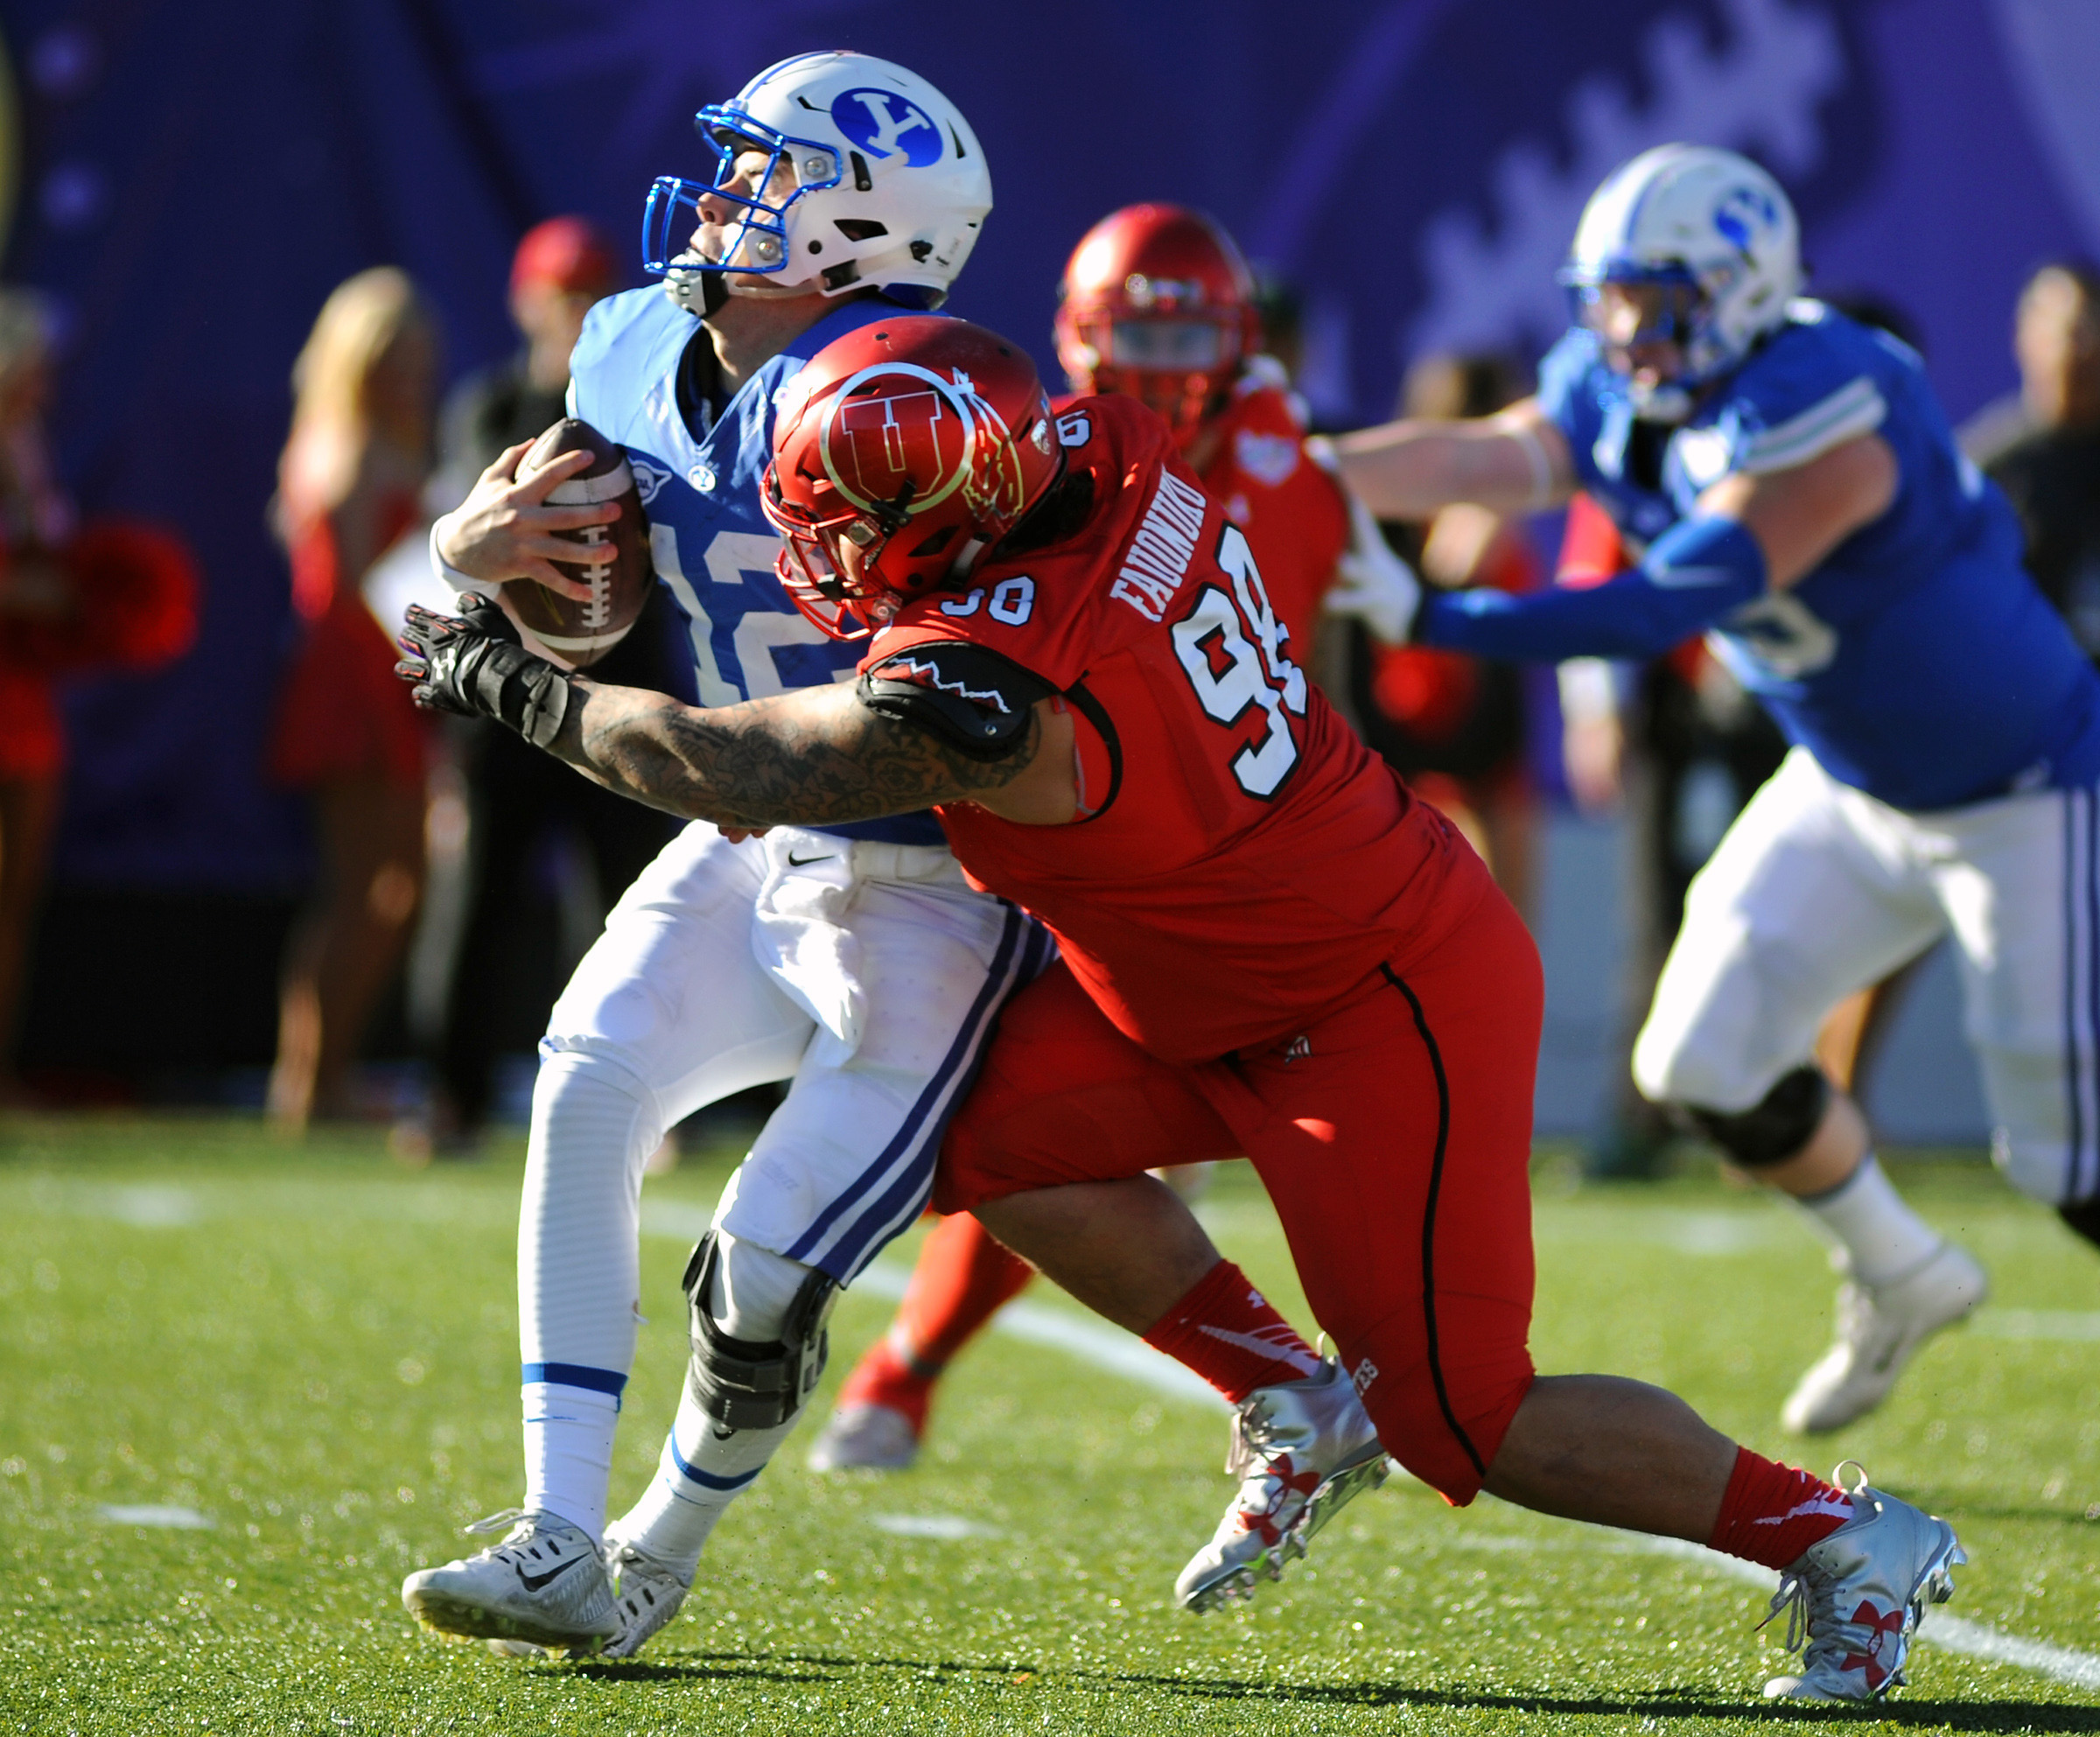 Dec 19, 2015; Las Vegas, NV, USA; BYU Cougars quarterback Tanner Magnum (12) is sacked for a loss by Utah Utes defensive tackle Viliseni Fauonuku (98) in the Las Vegas Bowl at Sam Boyd Stadium. (Stephen R. Sylvanie/USA TODAY Sports)